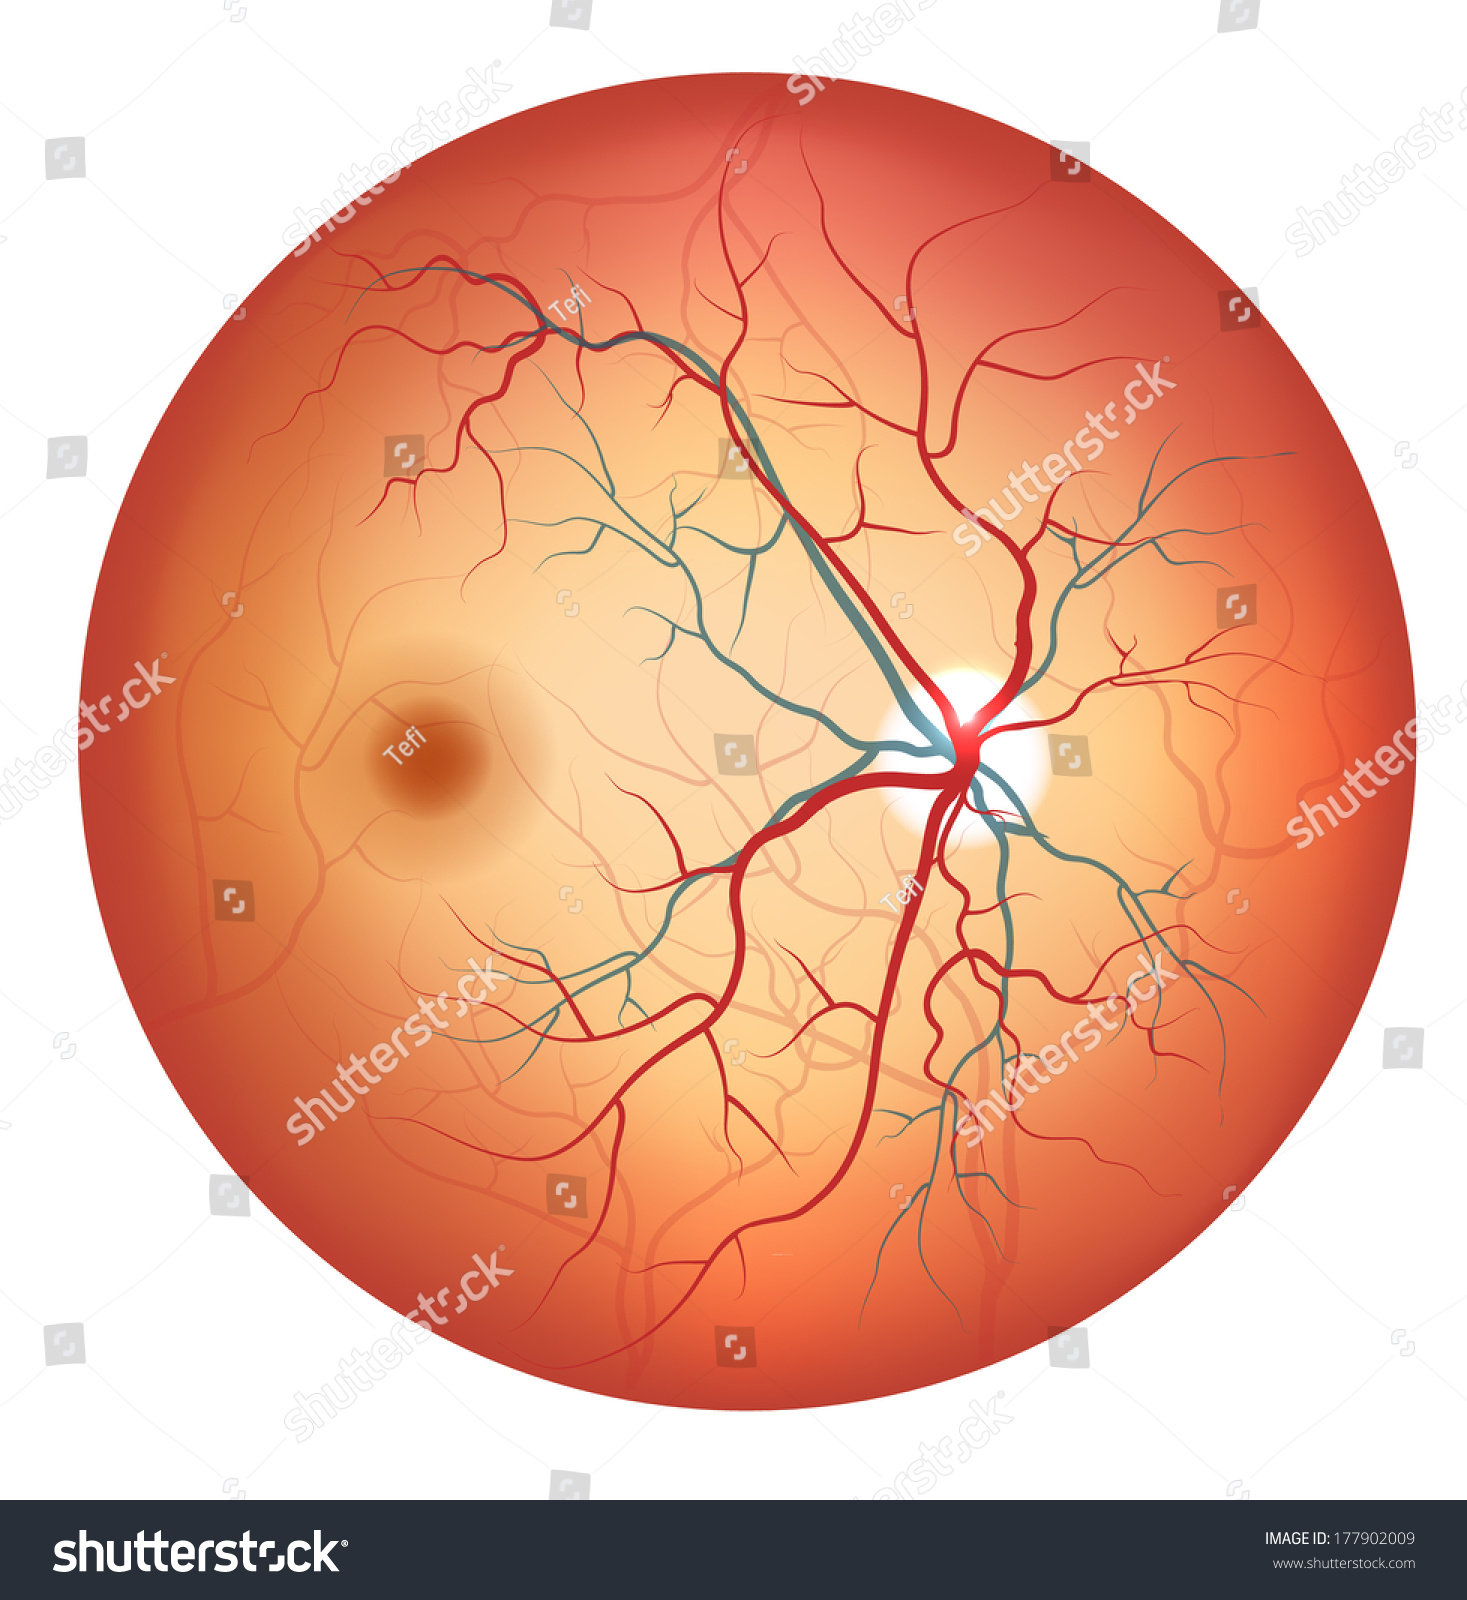 Human Eye Anatomy Retina Optic Disc Stock Vector (Royalty Free ...